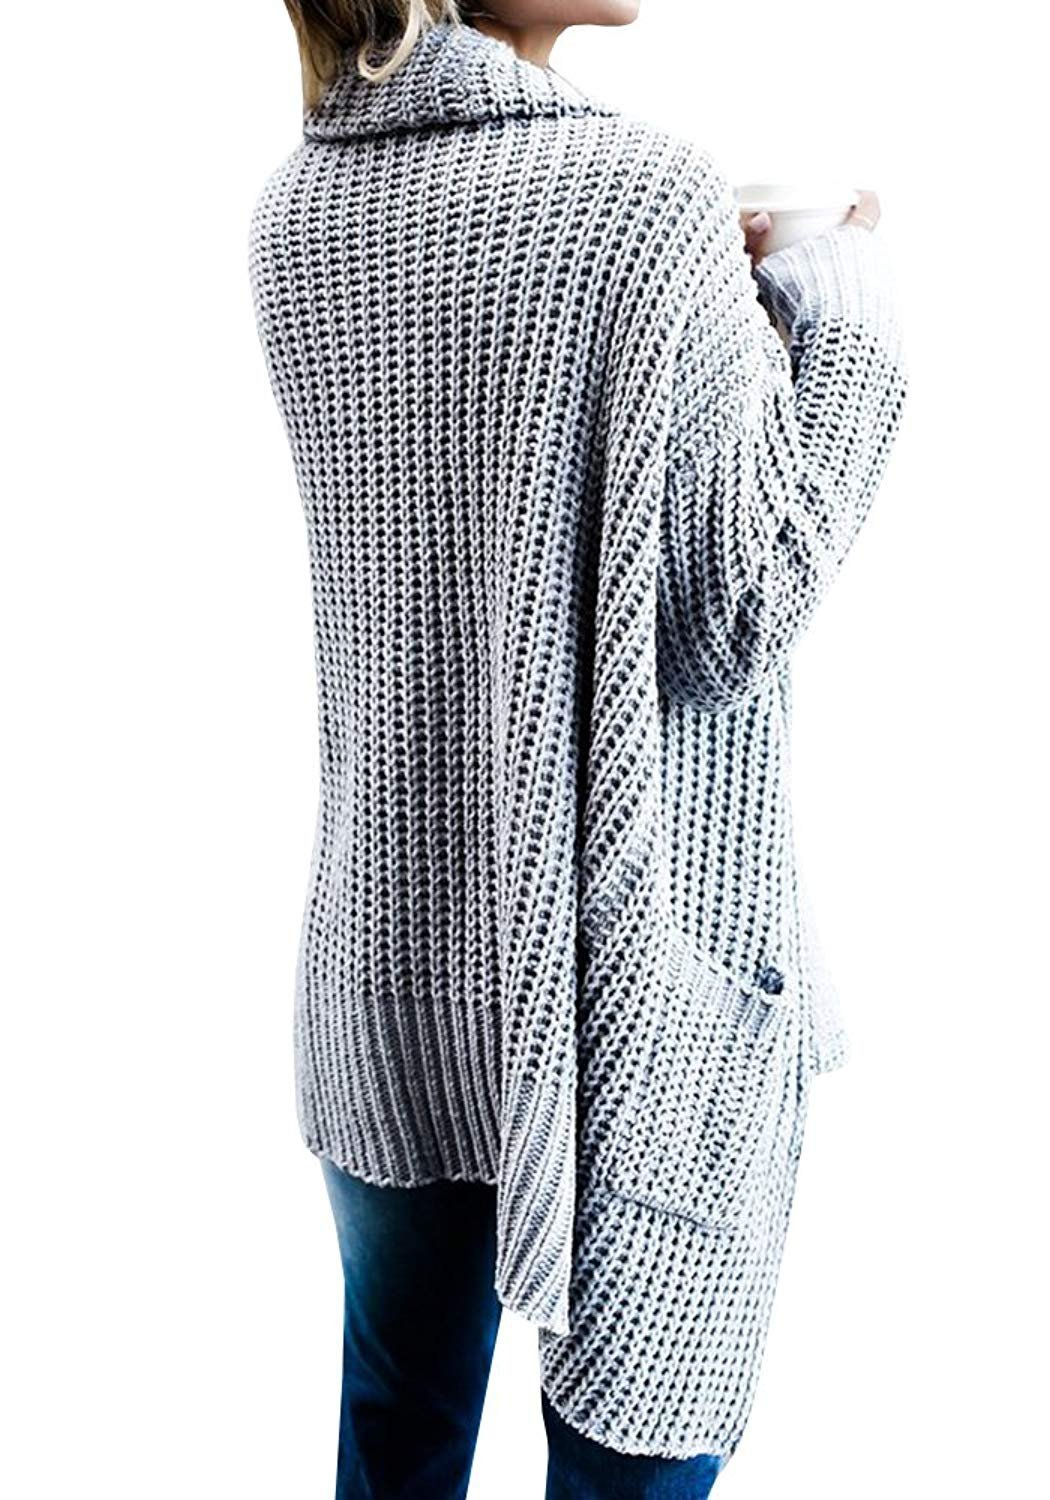 FIRENGOLI Womens Open Front Chunky Sweater Cardigan Long Sleeve Knit Coat with Pocket Grey XL by FIRENGOLI (Image #3)